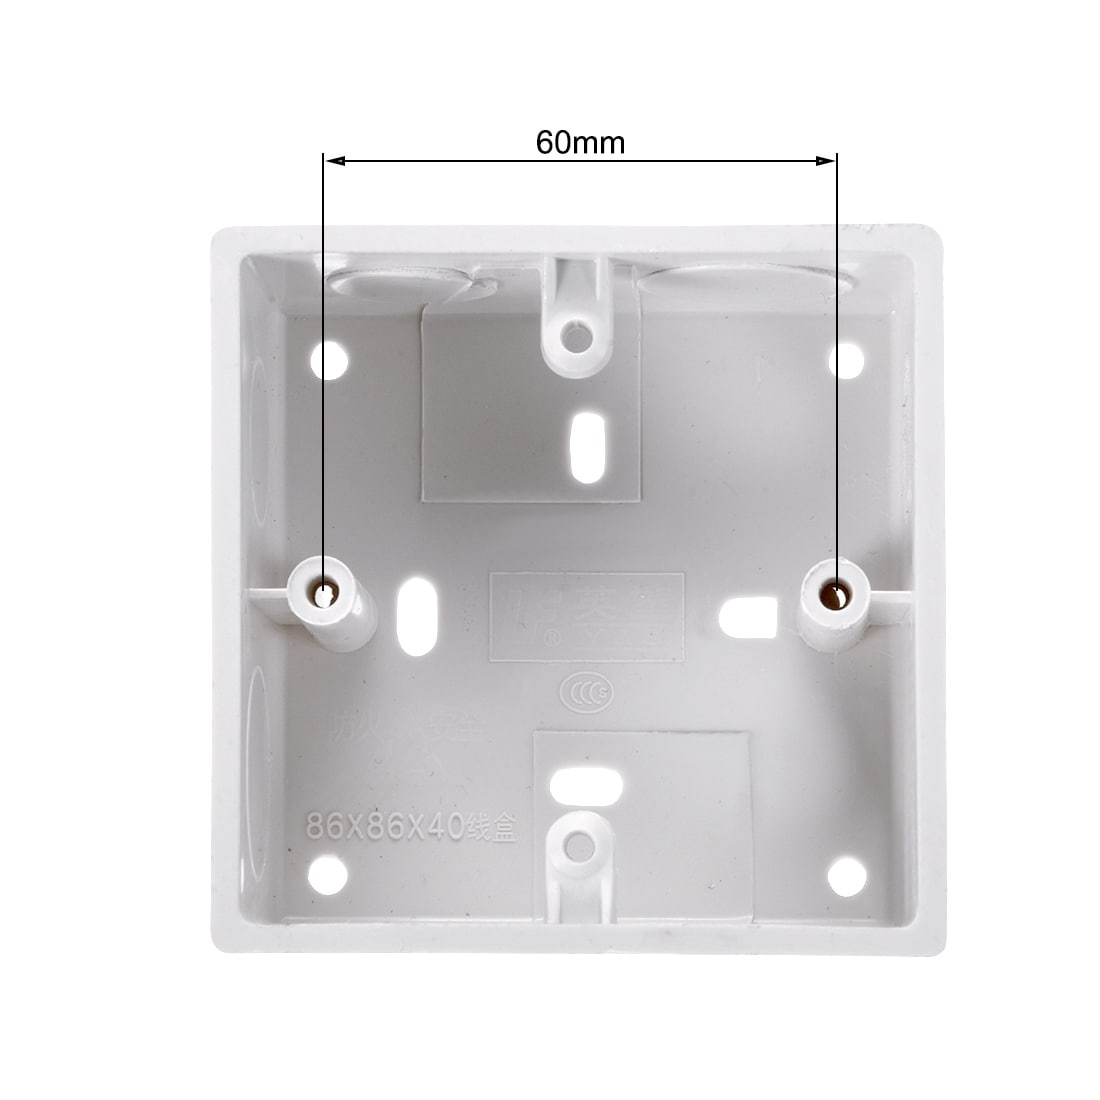 hight resolution of shop surface mount wiring box electric wire outlet 86 type pvc white 86 type 40mm depth 1pcs free shipping on orders over 45 overstock 27581409